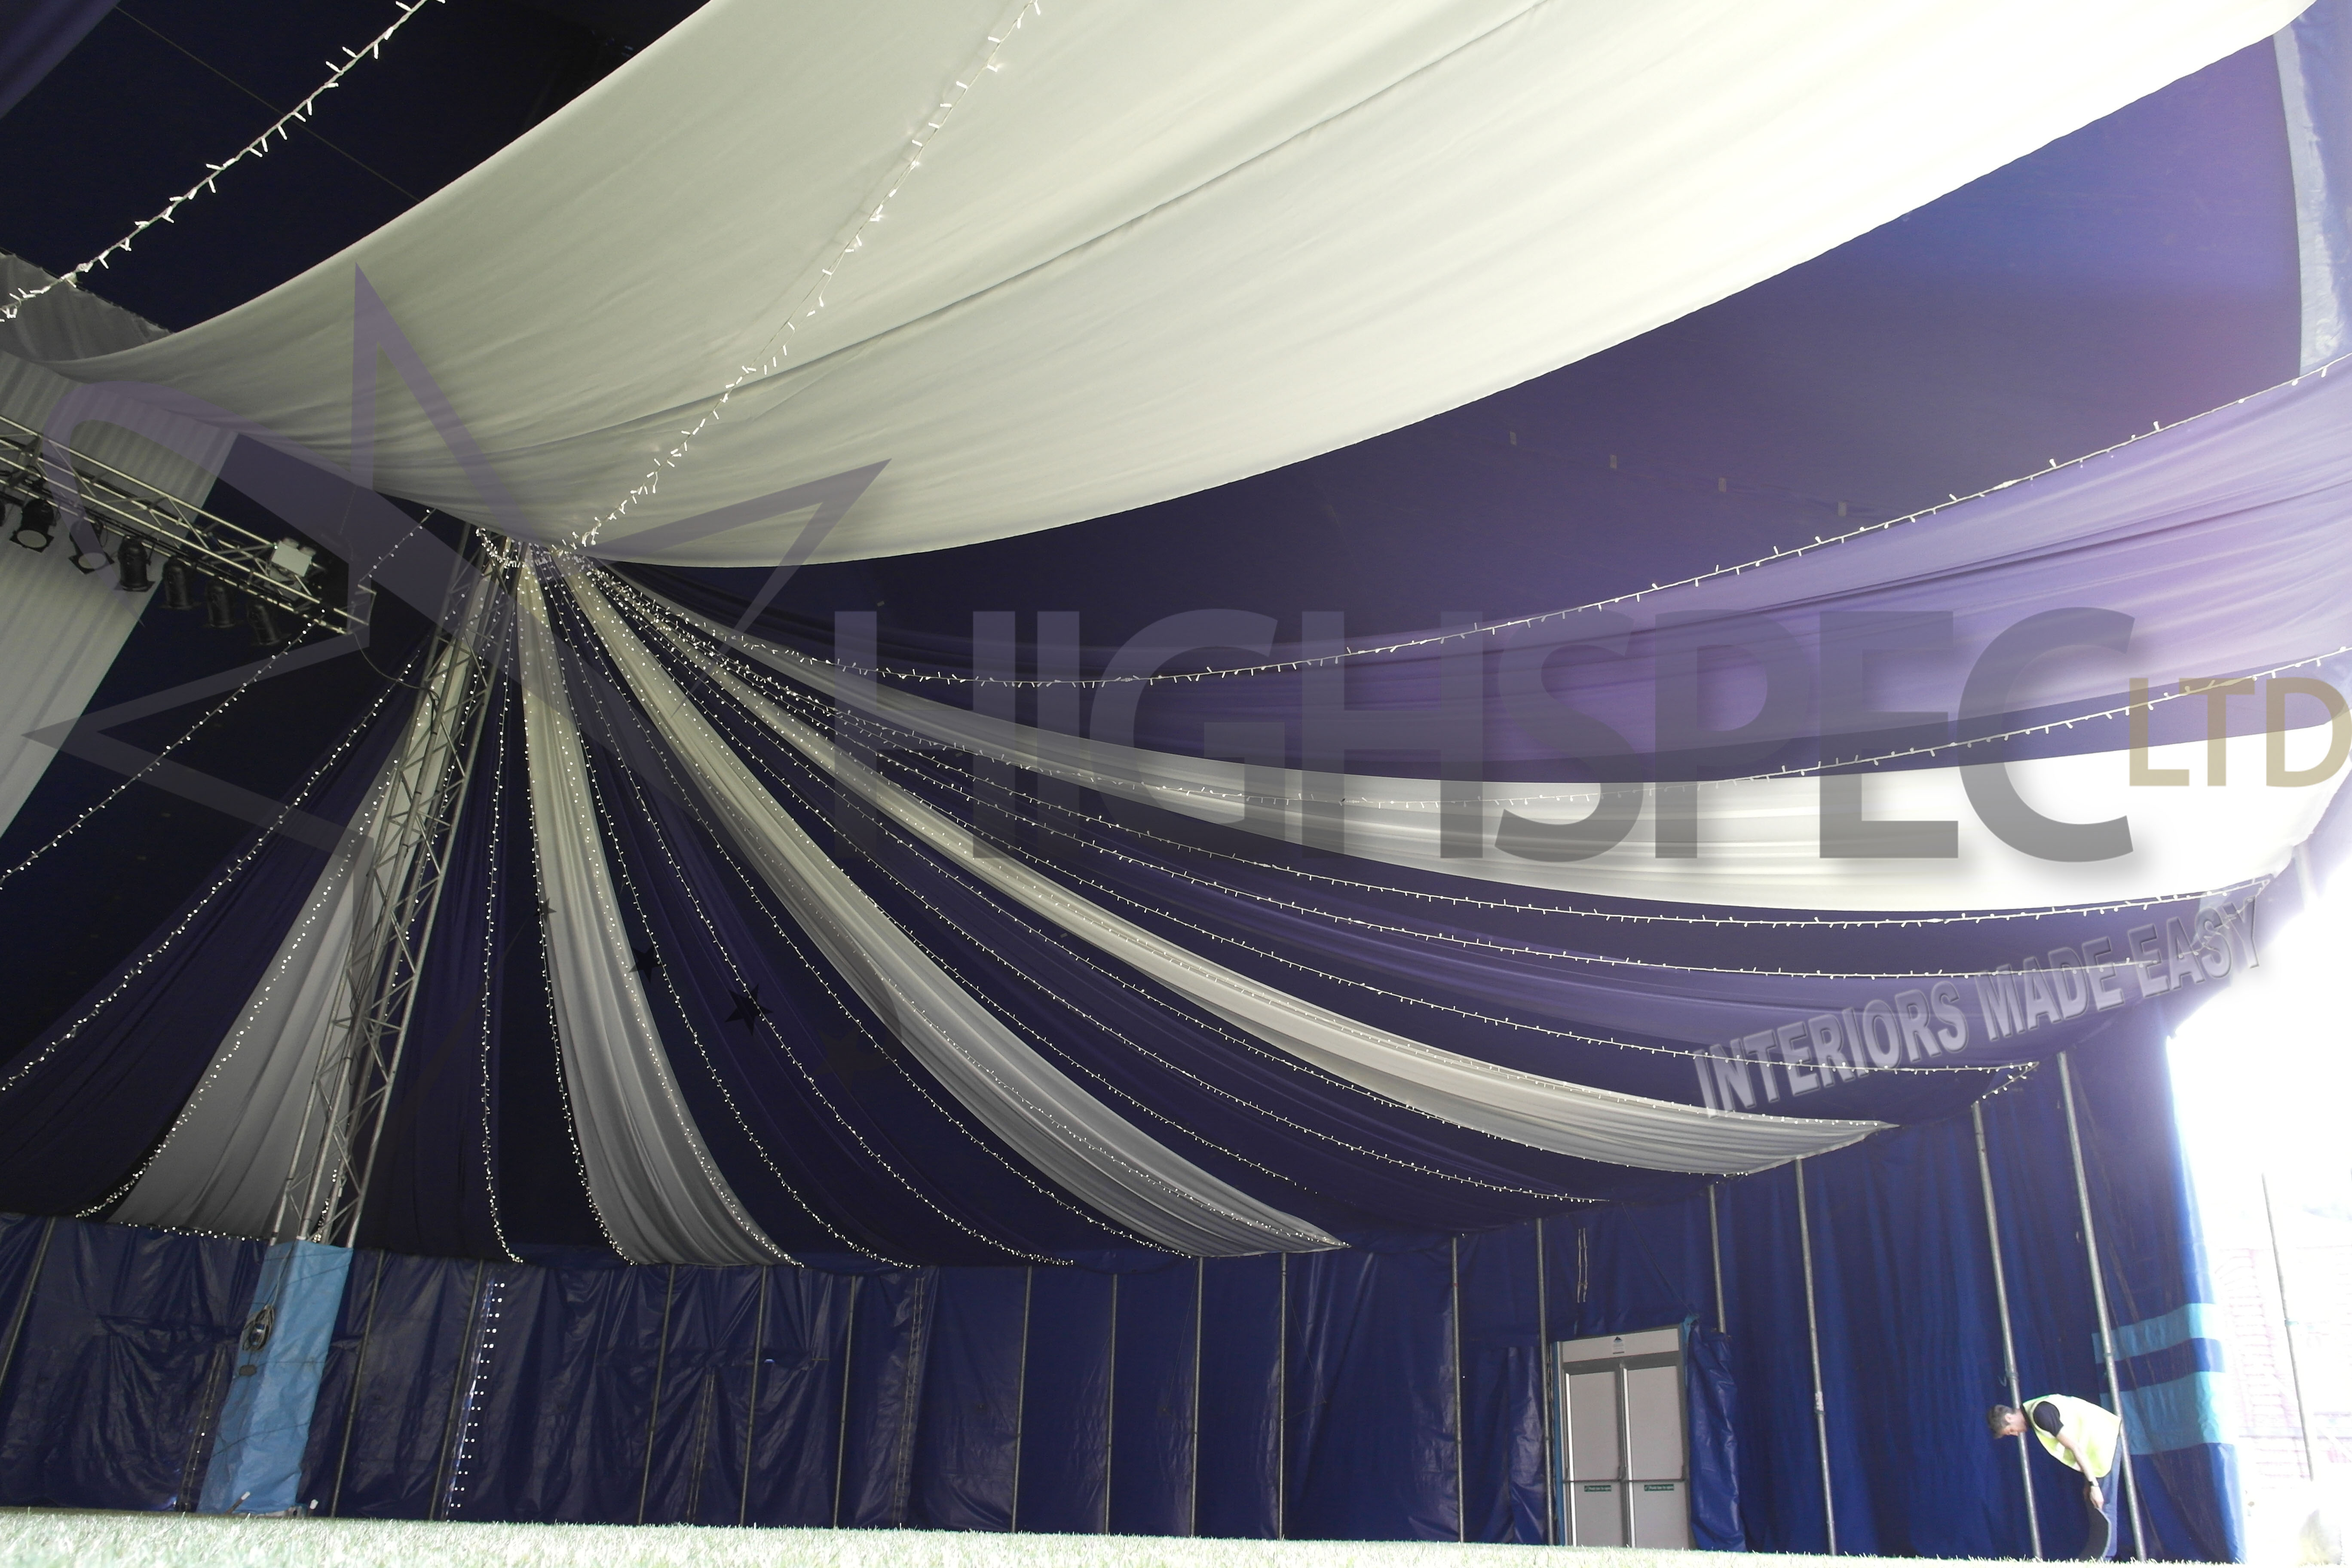 Big top ceiling drapes